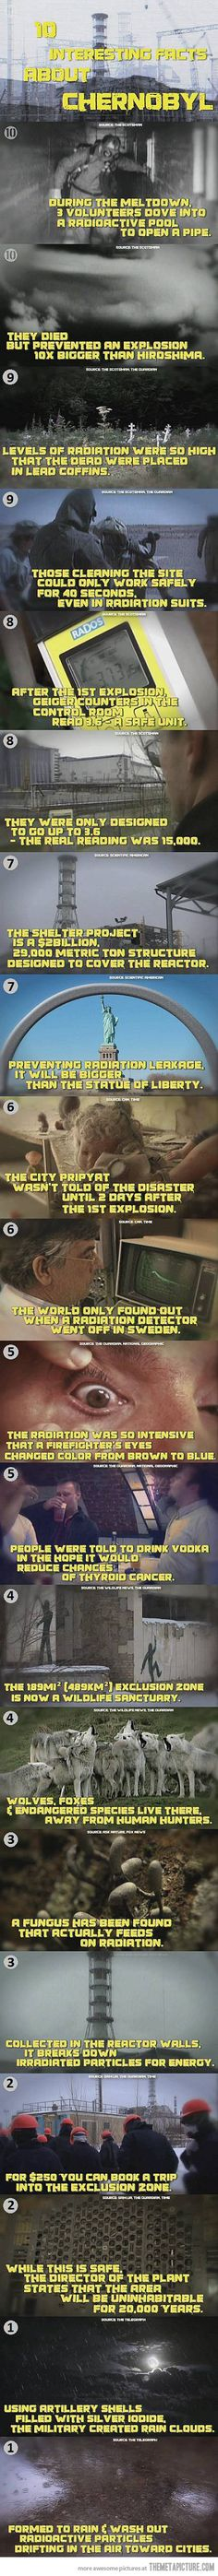 10 interesting facts about chernobyl on http://seriouslyforreal.com/seriously-for-real/10-interesting-facts-about-chernobyl/